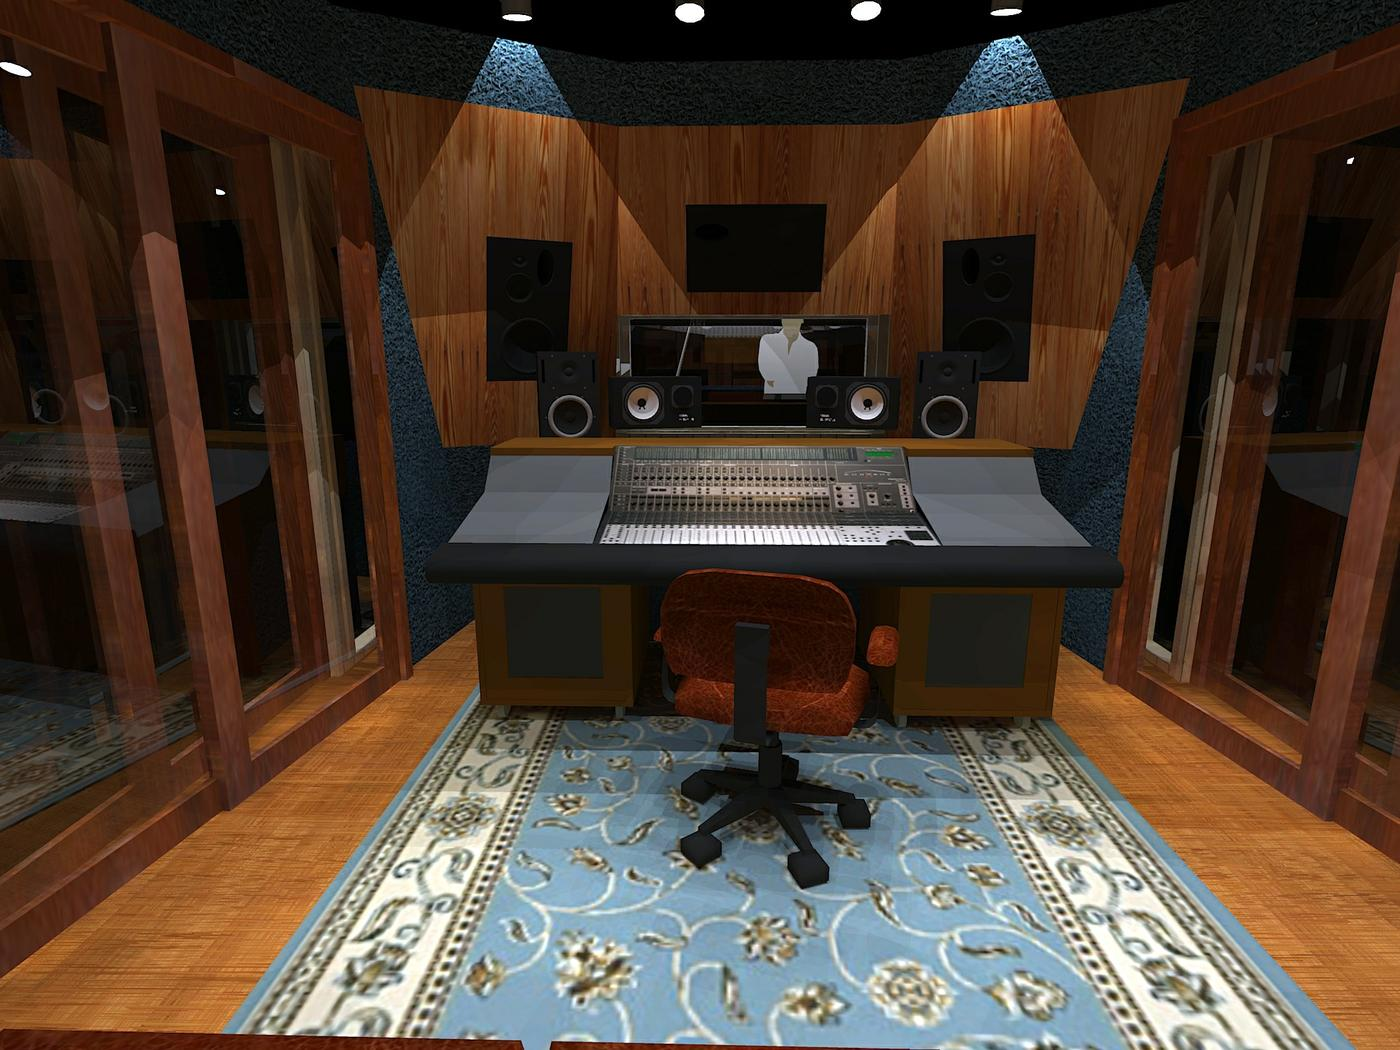 1000 images about recording studio design on pinterest casablanca music rooms and multimedia - Home recording studio design ideas ...